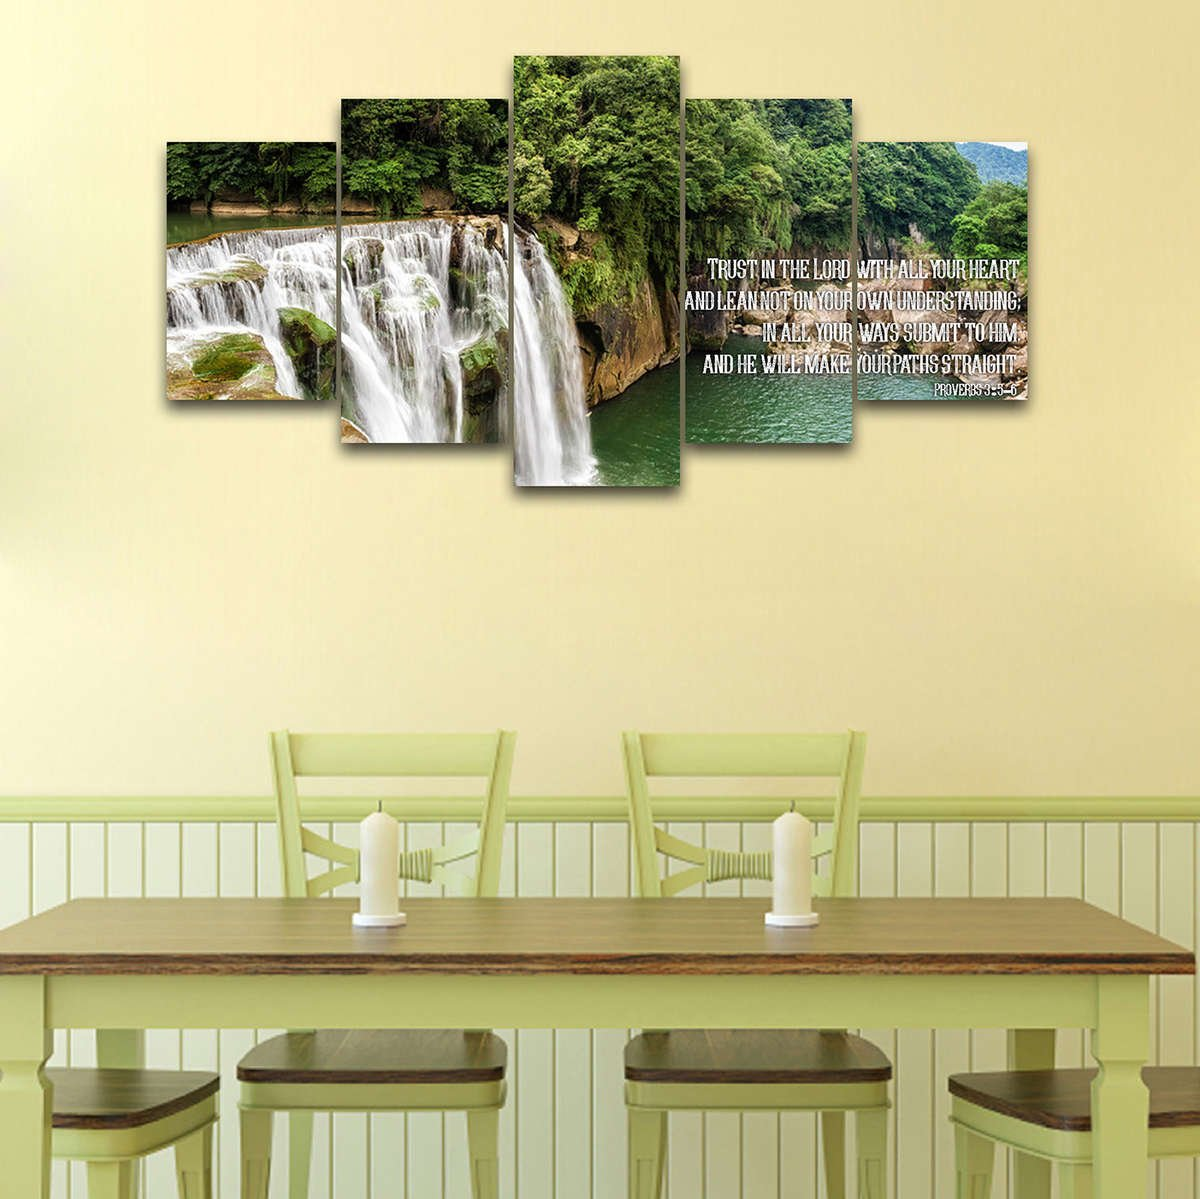 Cool Wall Art From The Heart Gallery - The Wall Art Decorations ...